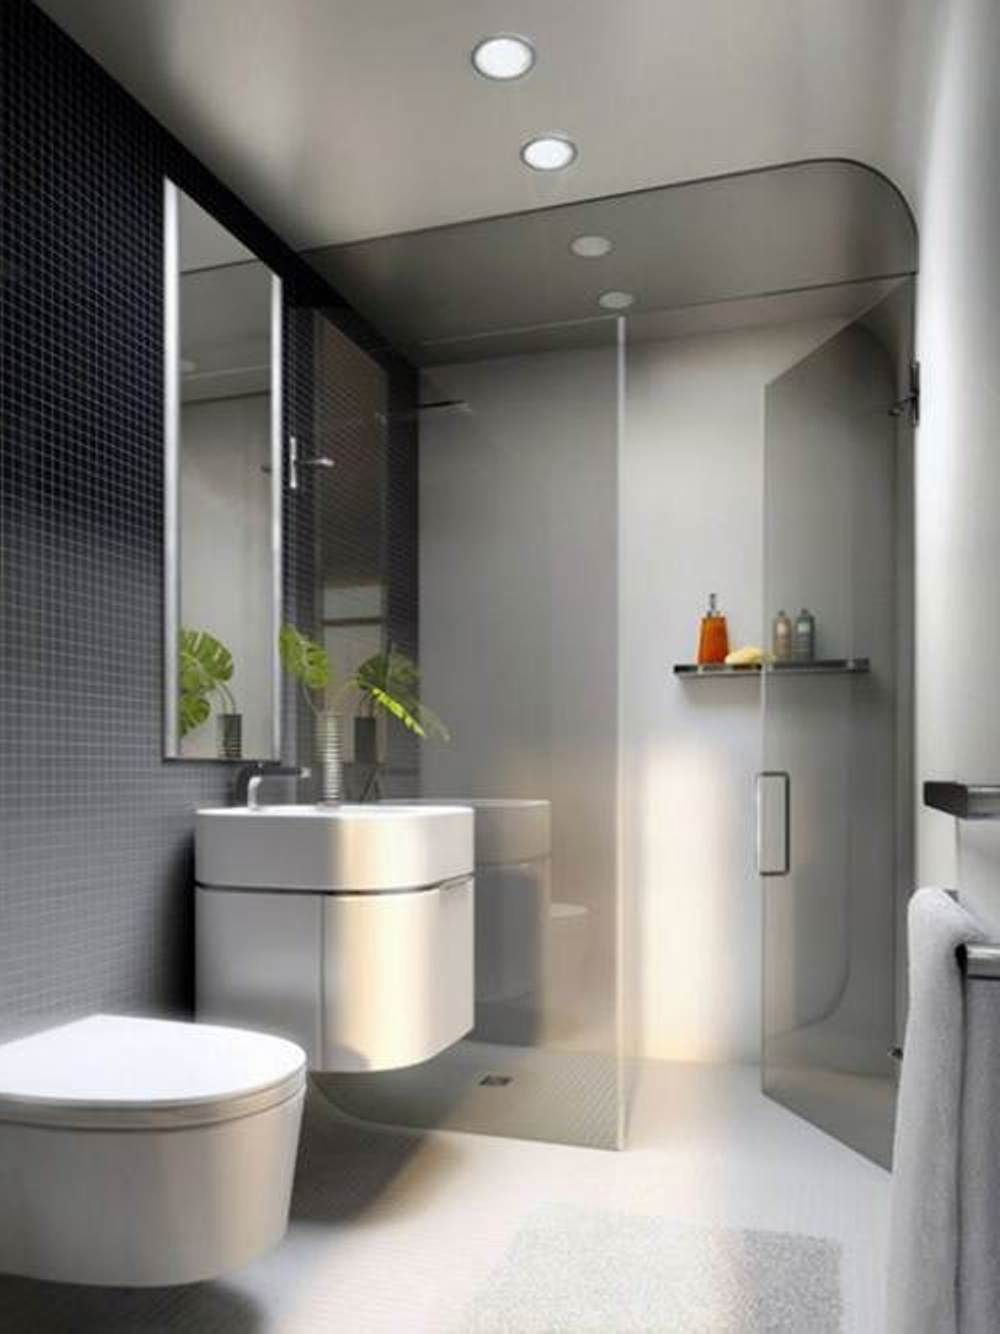 Awesome small modern bathroom designs shower indoor - Beautiful modern bathroom designs ...